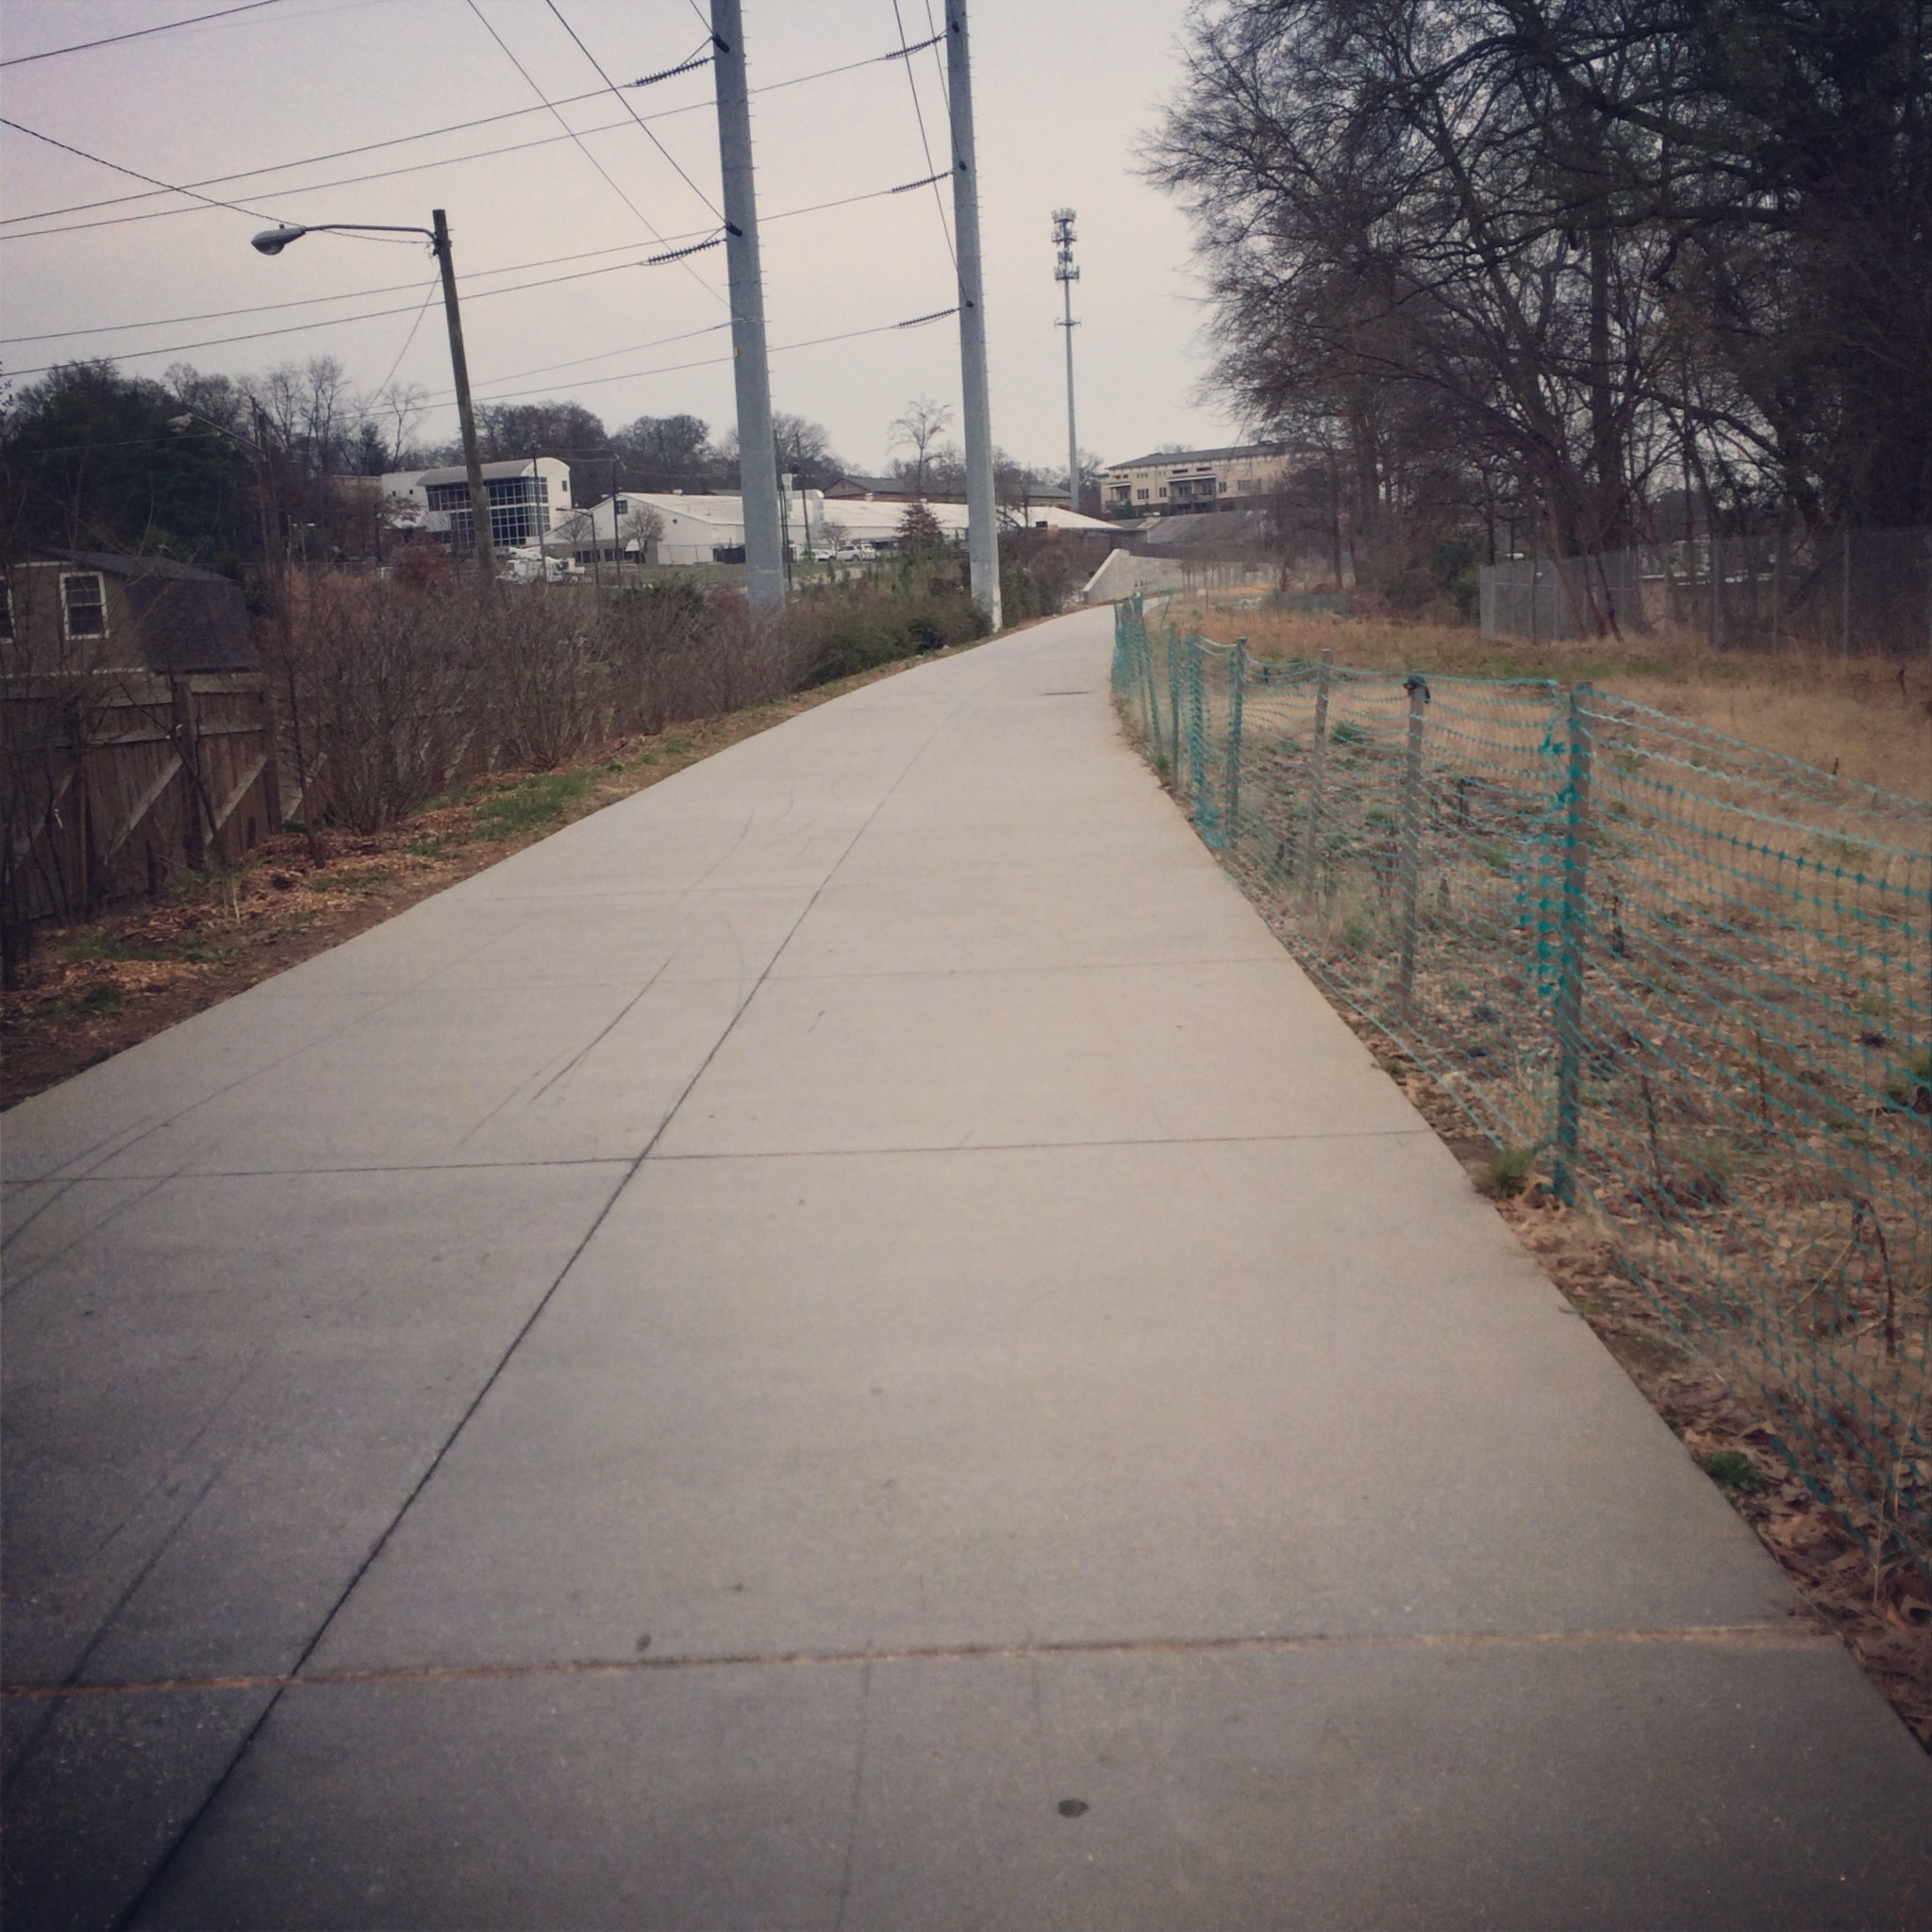 Took a chilly jog on the BeltLine. Never home during daylight hours anymore, so this was a treat.